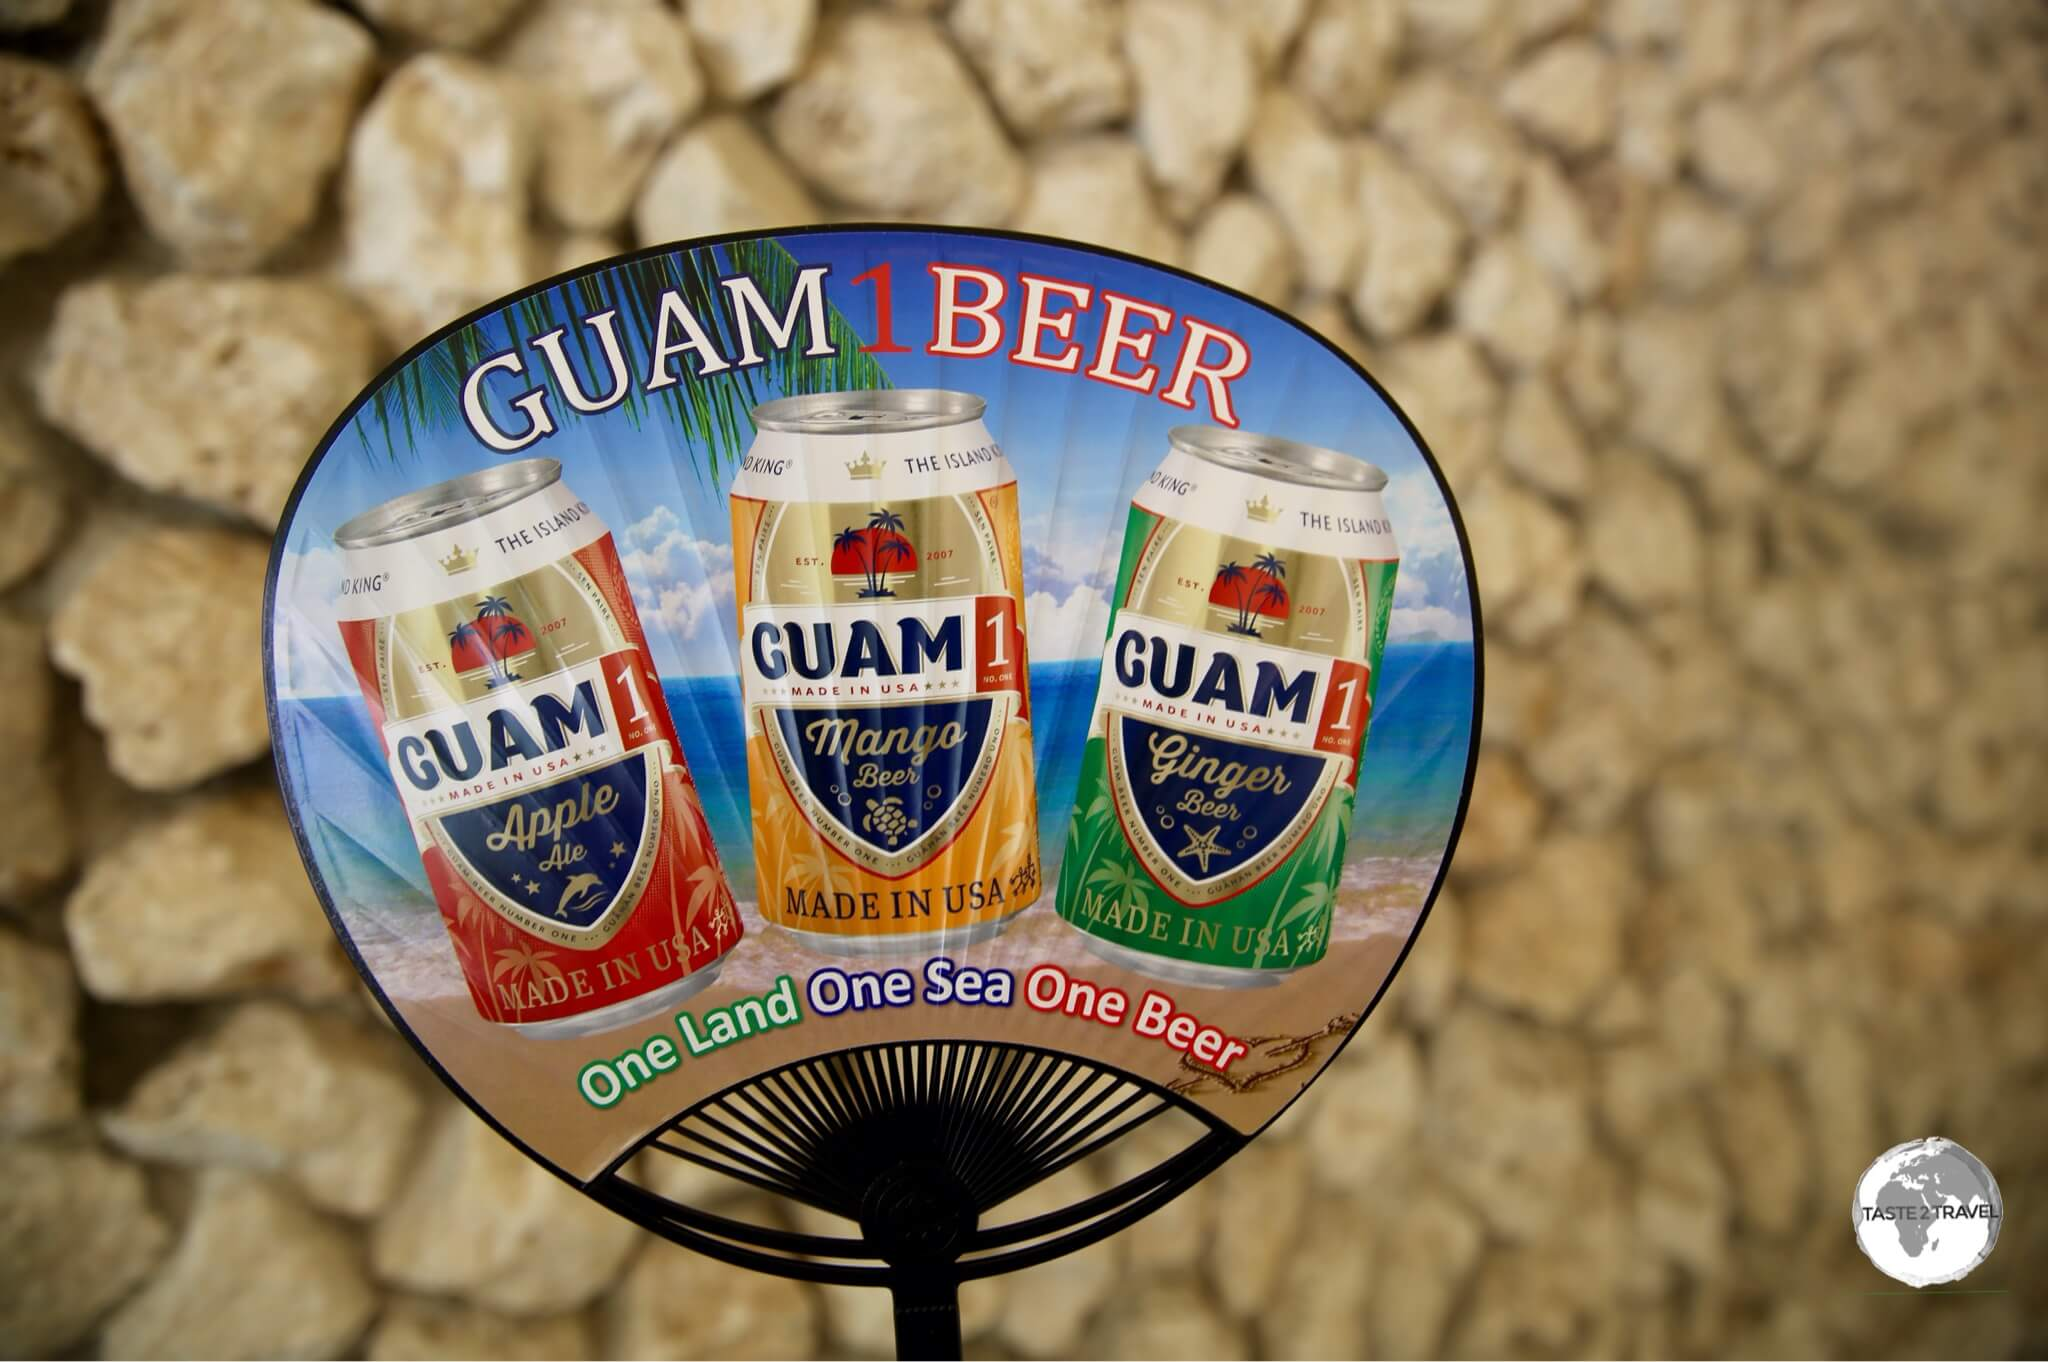 I too was a 'fan' of the local Guam beer.